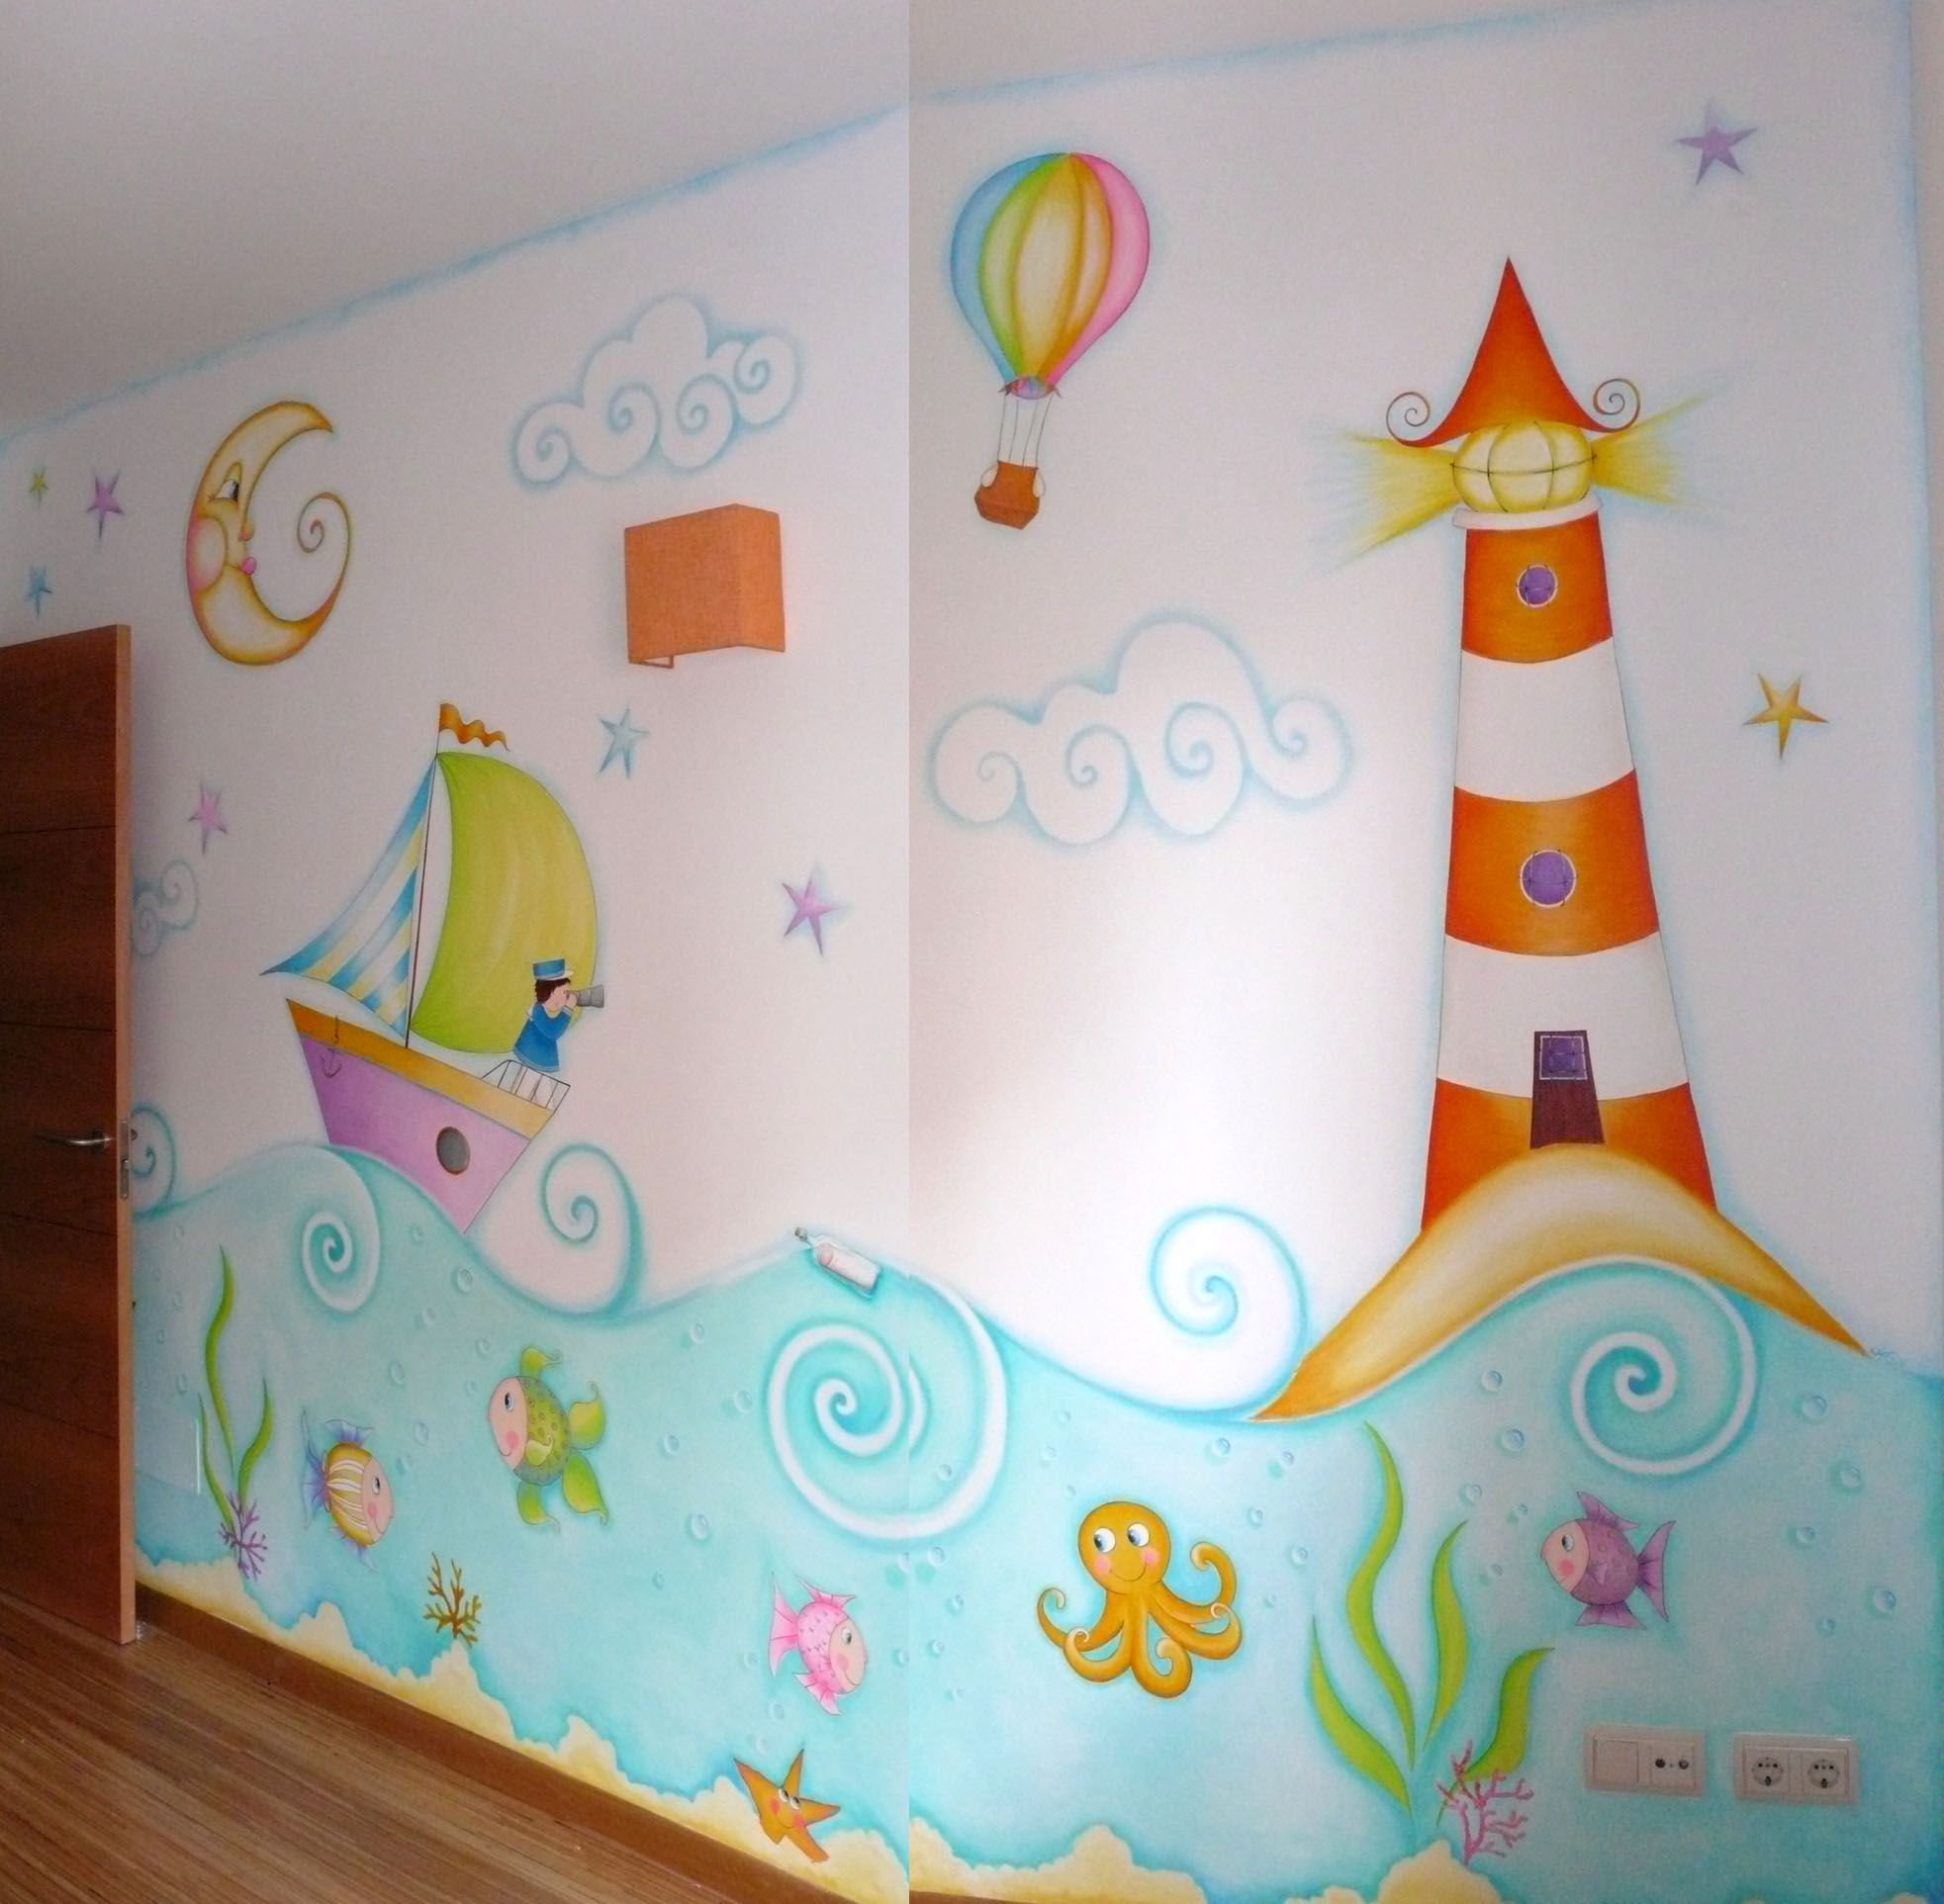 mural marino murales infantiles pinterest school walls and decoration. Black Bedroom Furniture Sets. Home Design Ideas